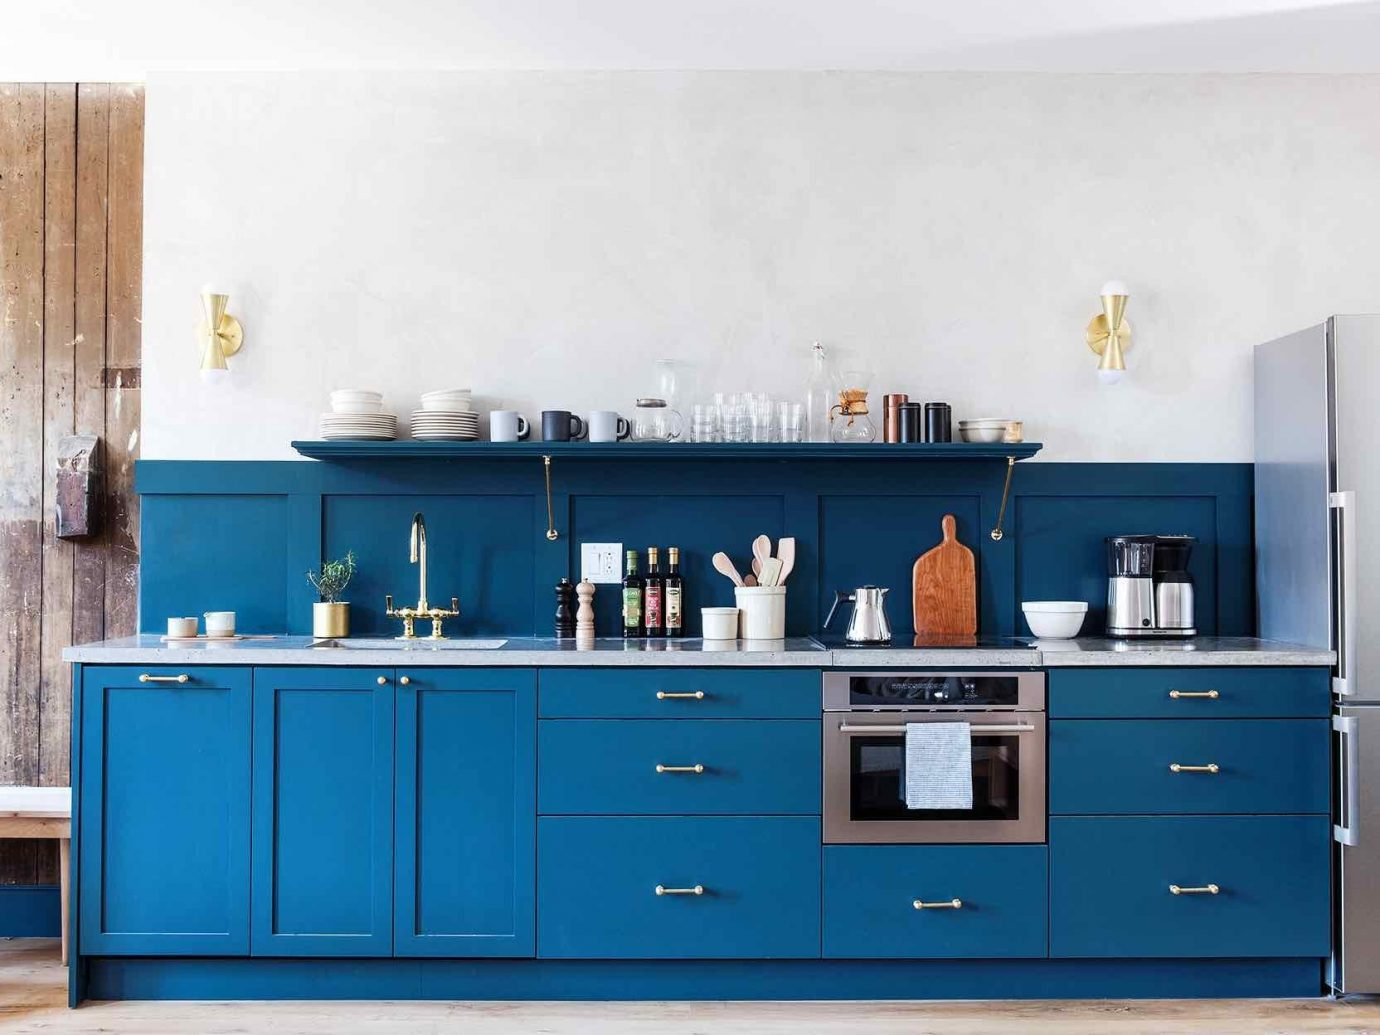 Boutique Hotels Hotels Philadelphia Kitchen furniture shelf chest of drawers countertop interior design product cabinetry sideboard shelving cuisine classique